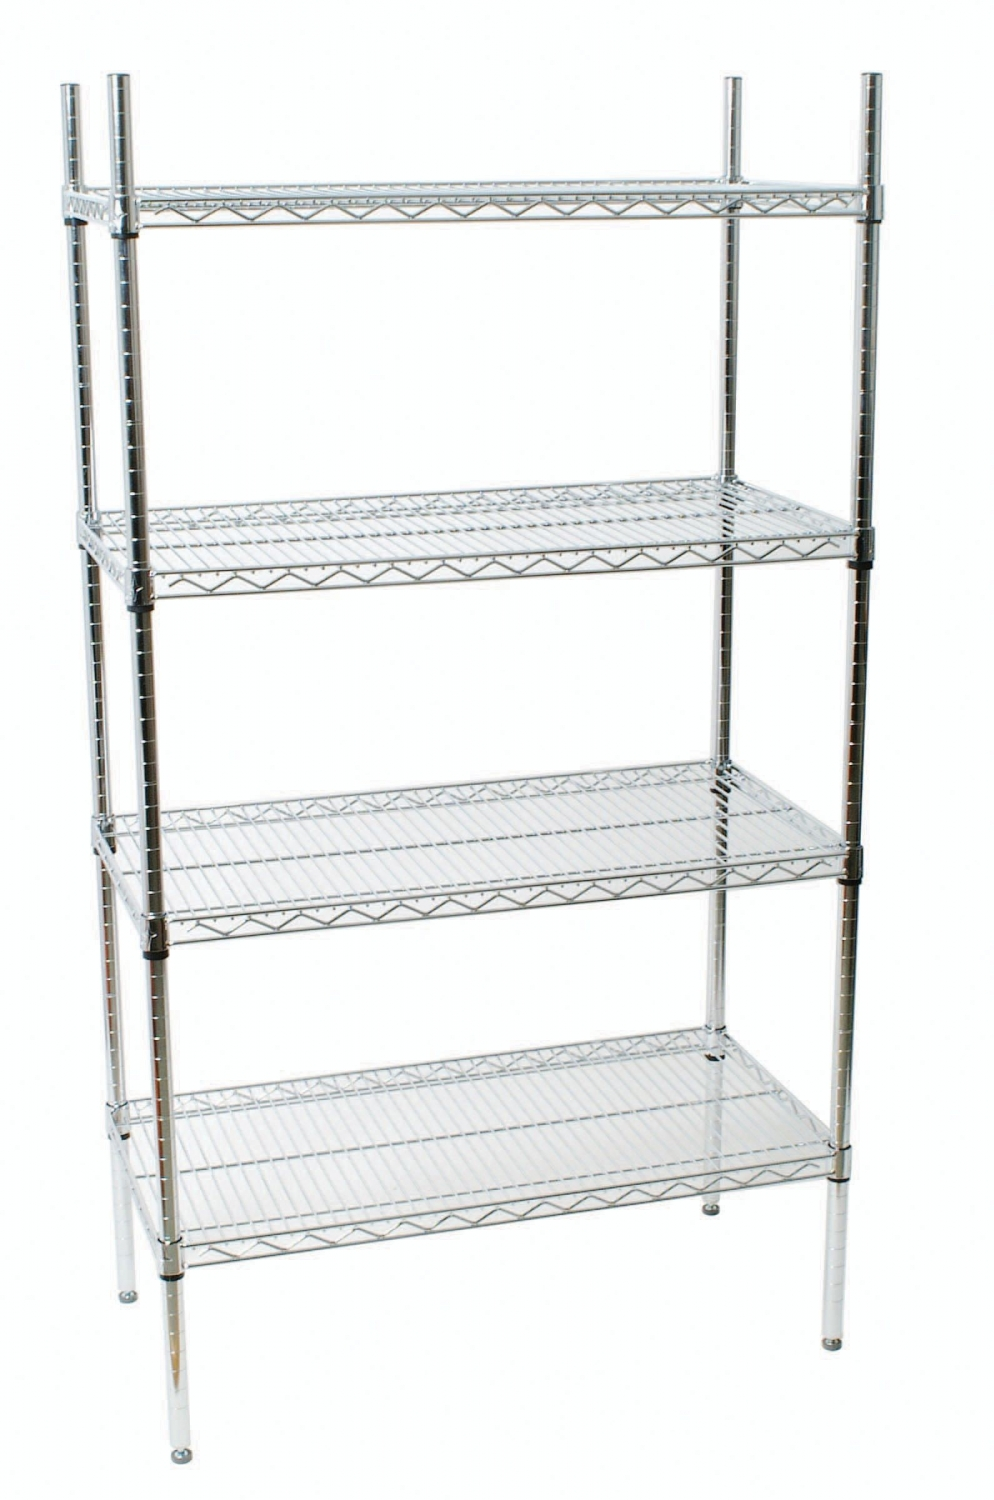 Johnson-Rose-118368-Shelving-Unit-With-Four-18--X-36--Shelves-Includes-Four-84--Posts-83404_xlarge.jpg